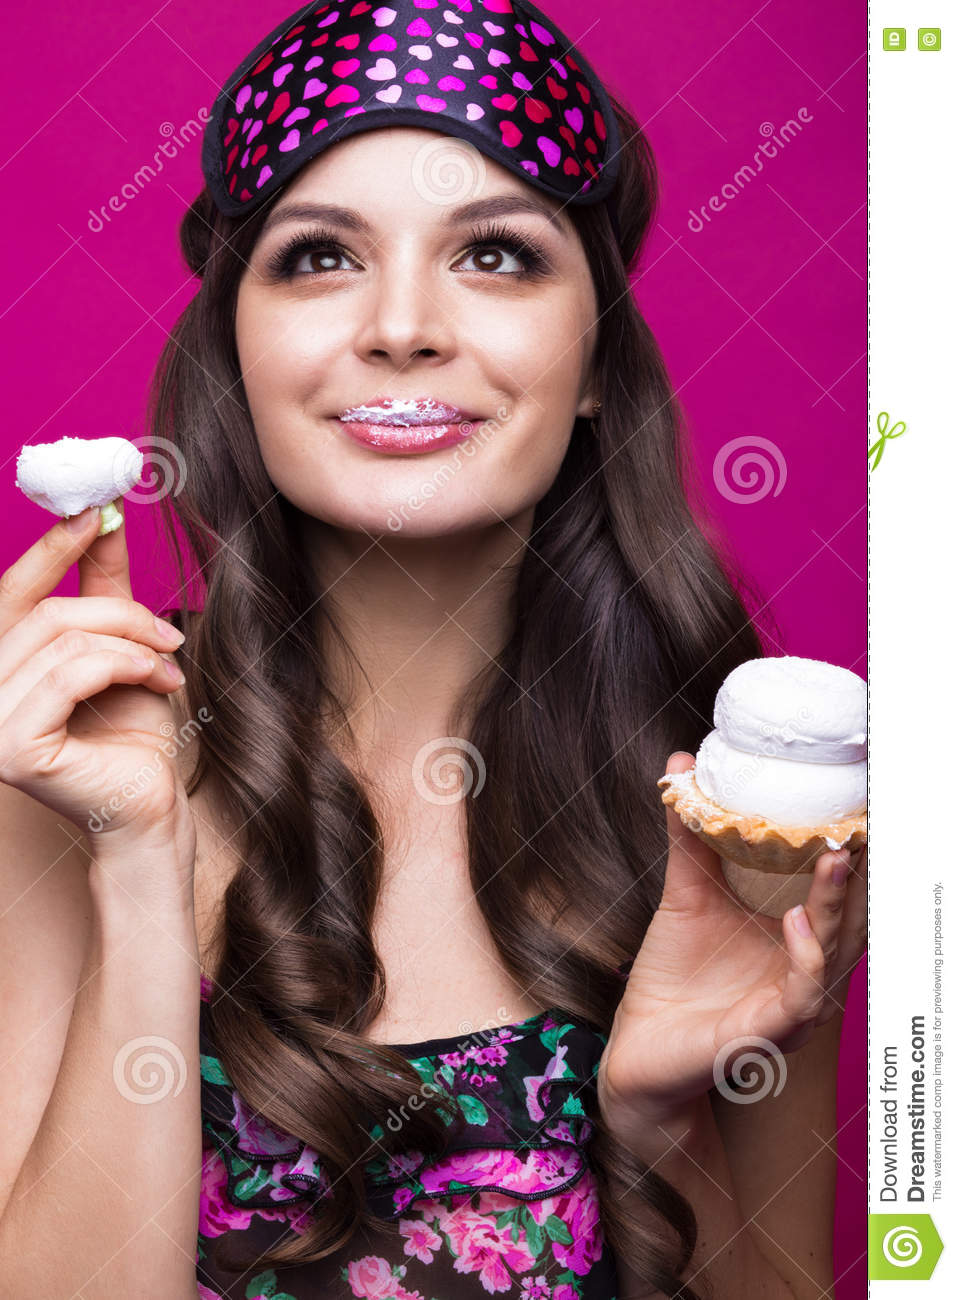 Funny Young Woman In Sleeping Mask And Pajamas, Sweets On ...